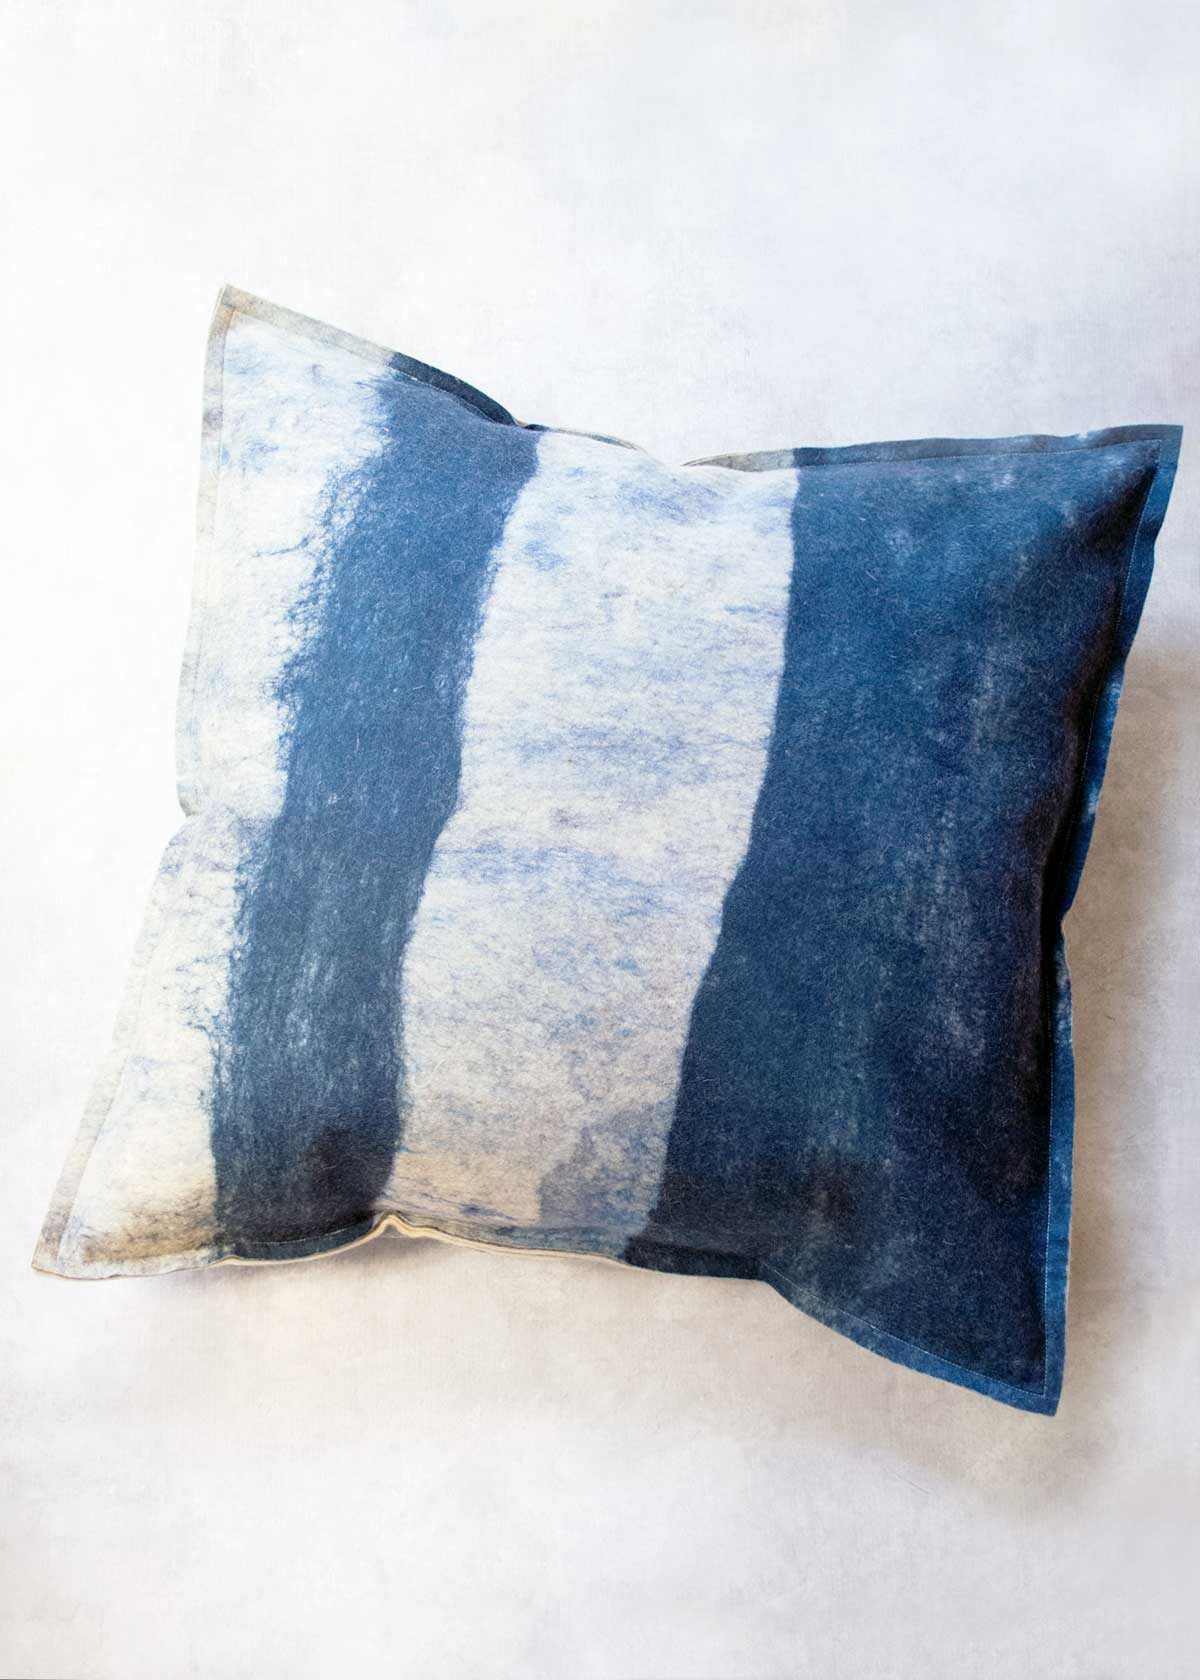 Unnu Rothko Pillow, hand felted wool